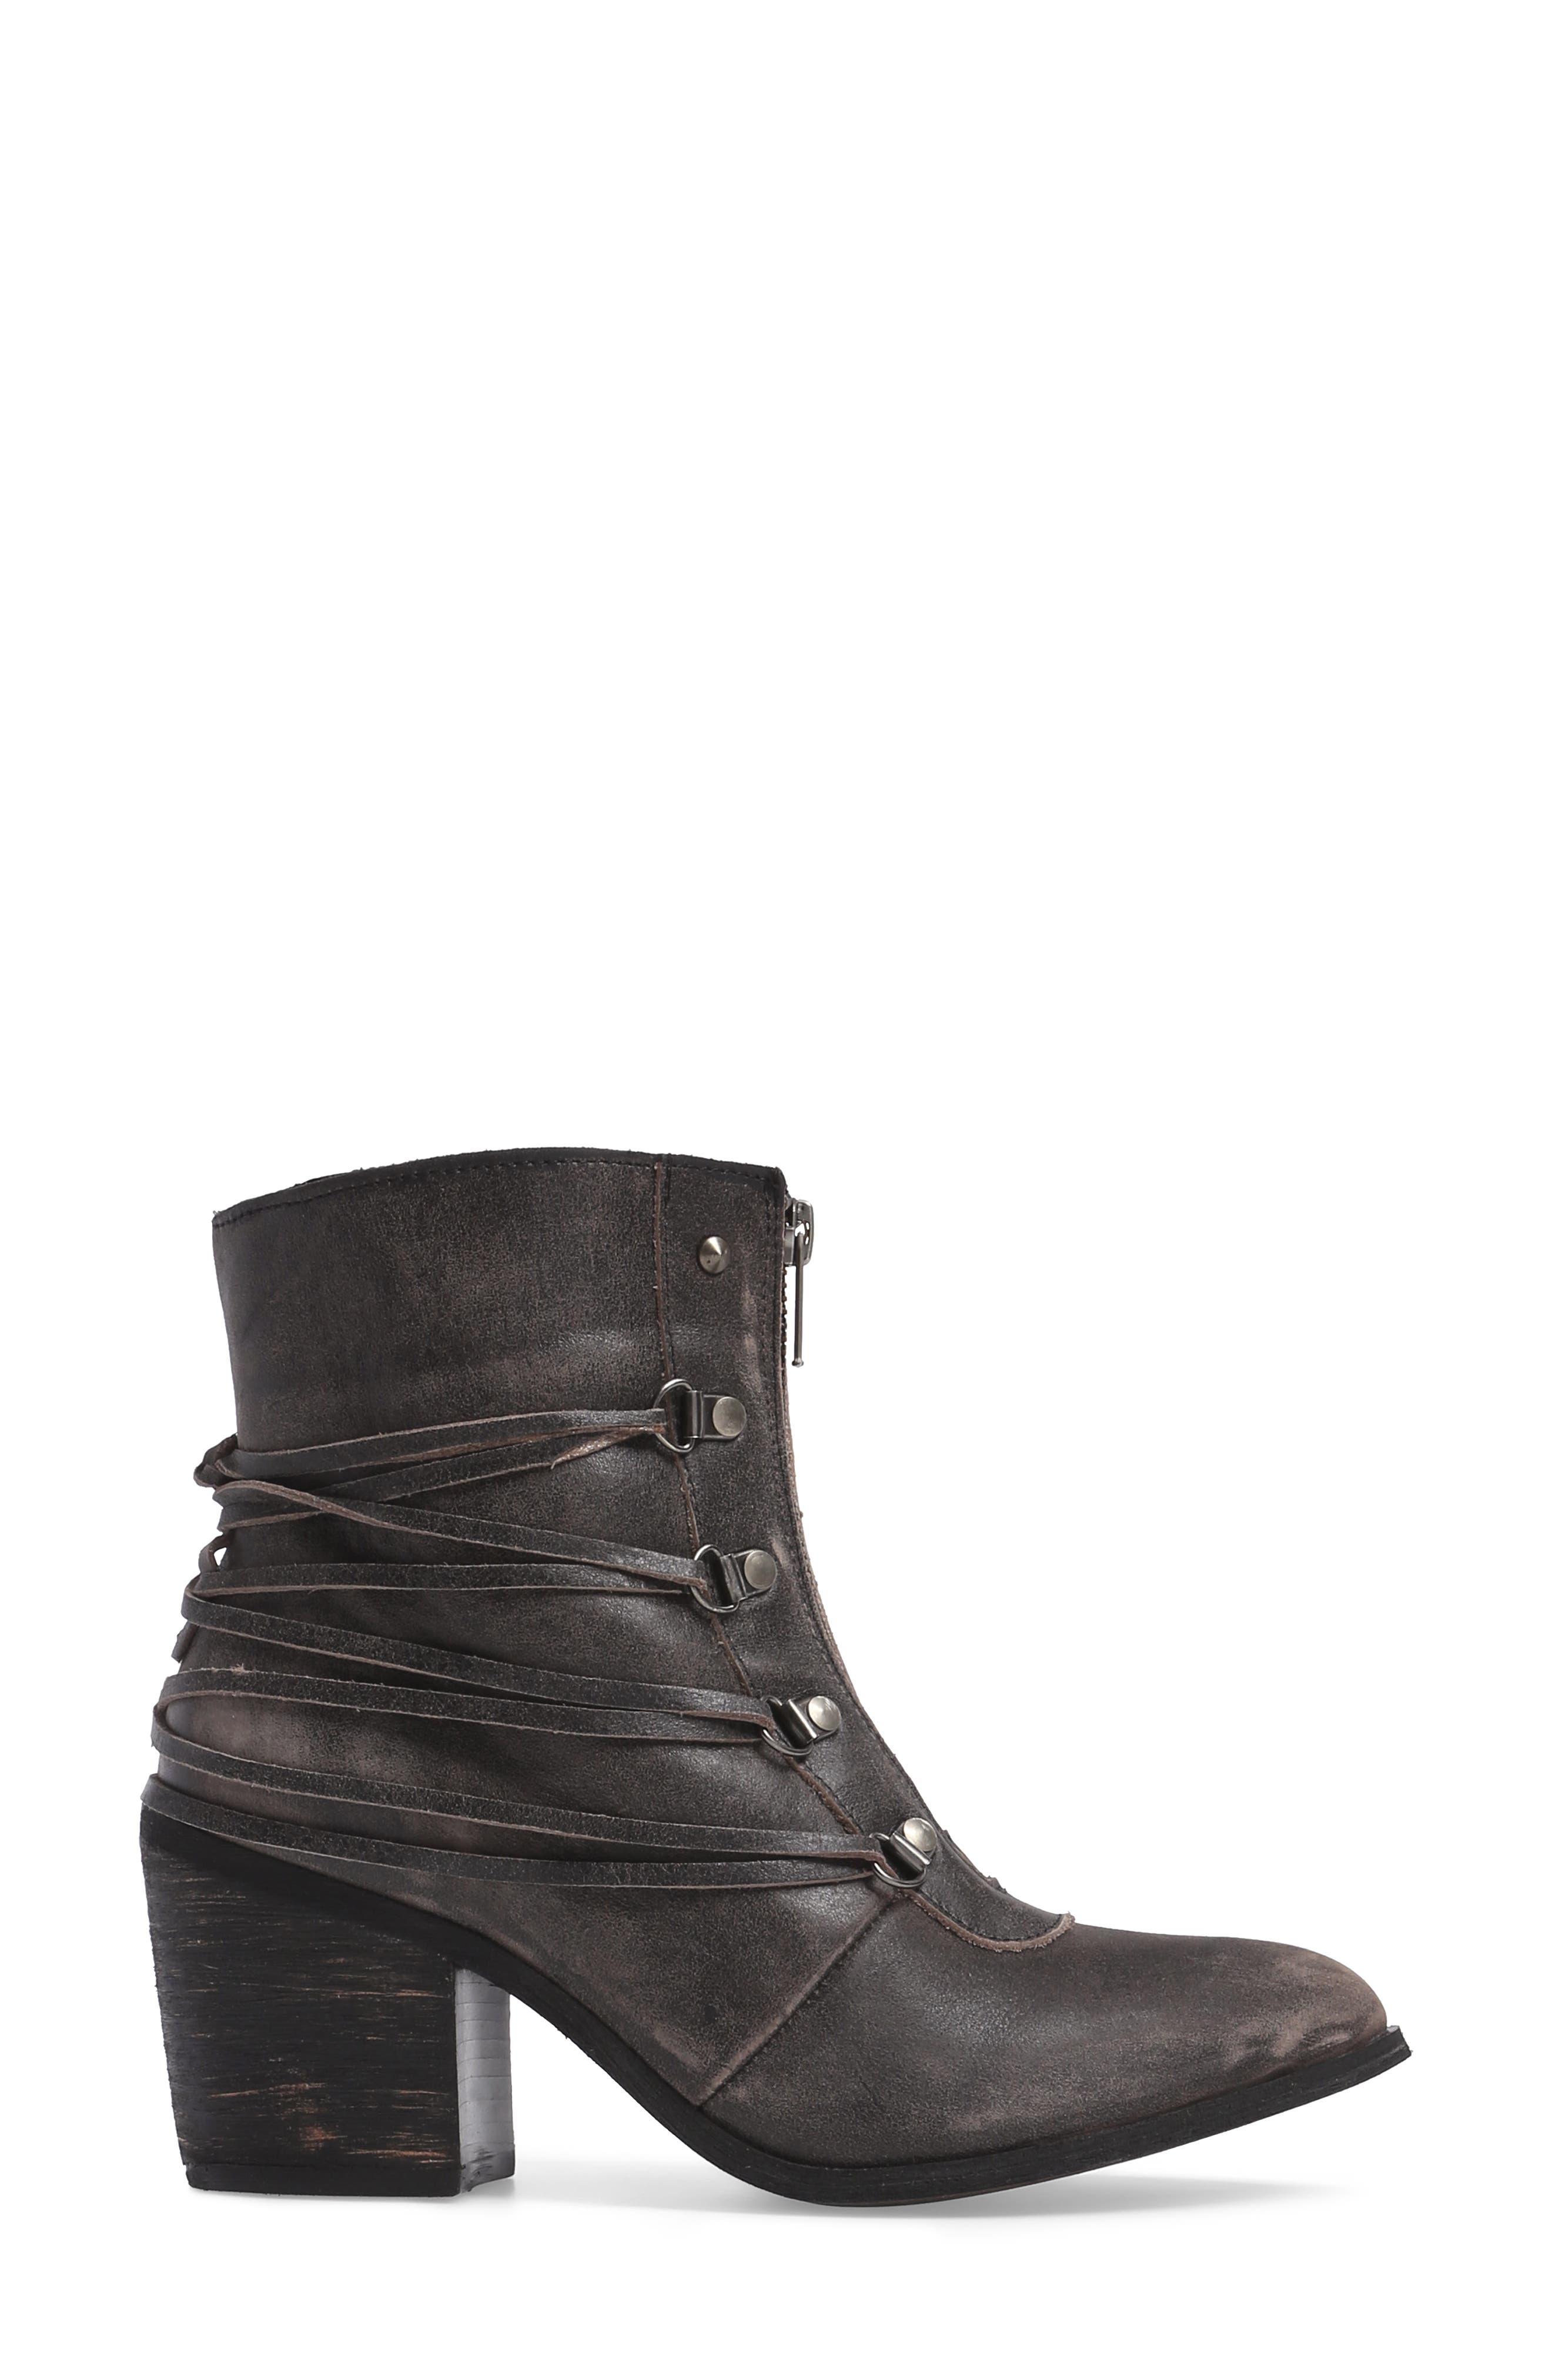 Peacekeeper Lace-Up Bootie,                             Alternate thumbnail 3, color,                             001